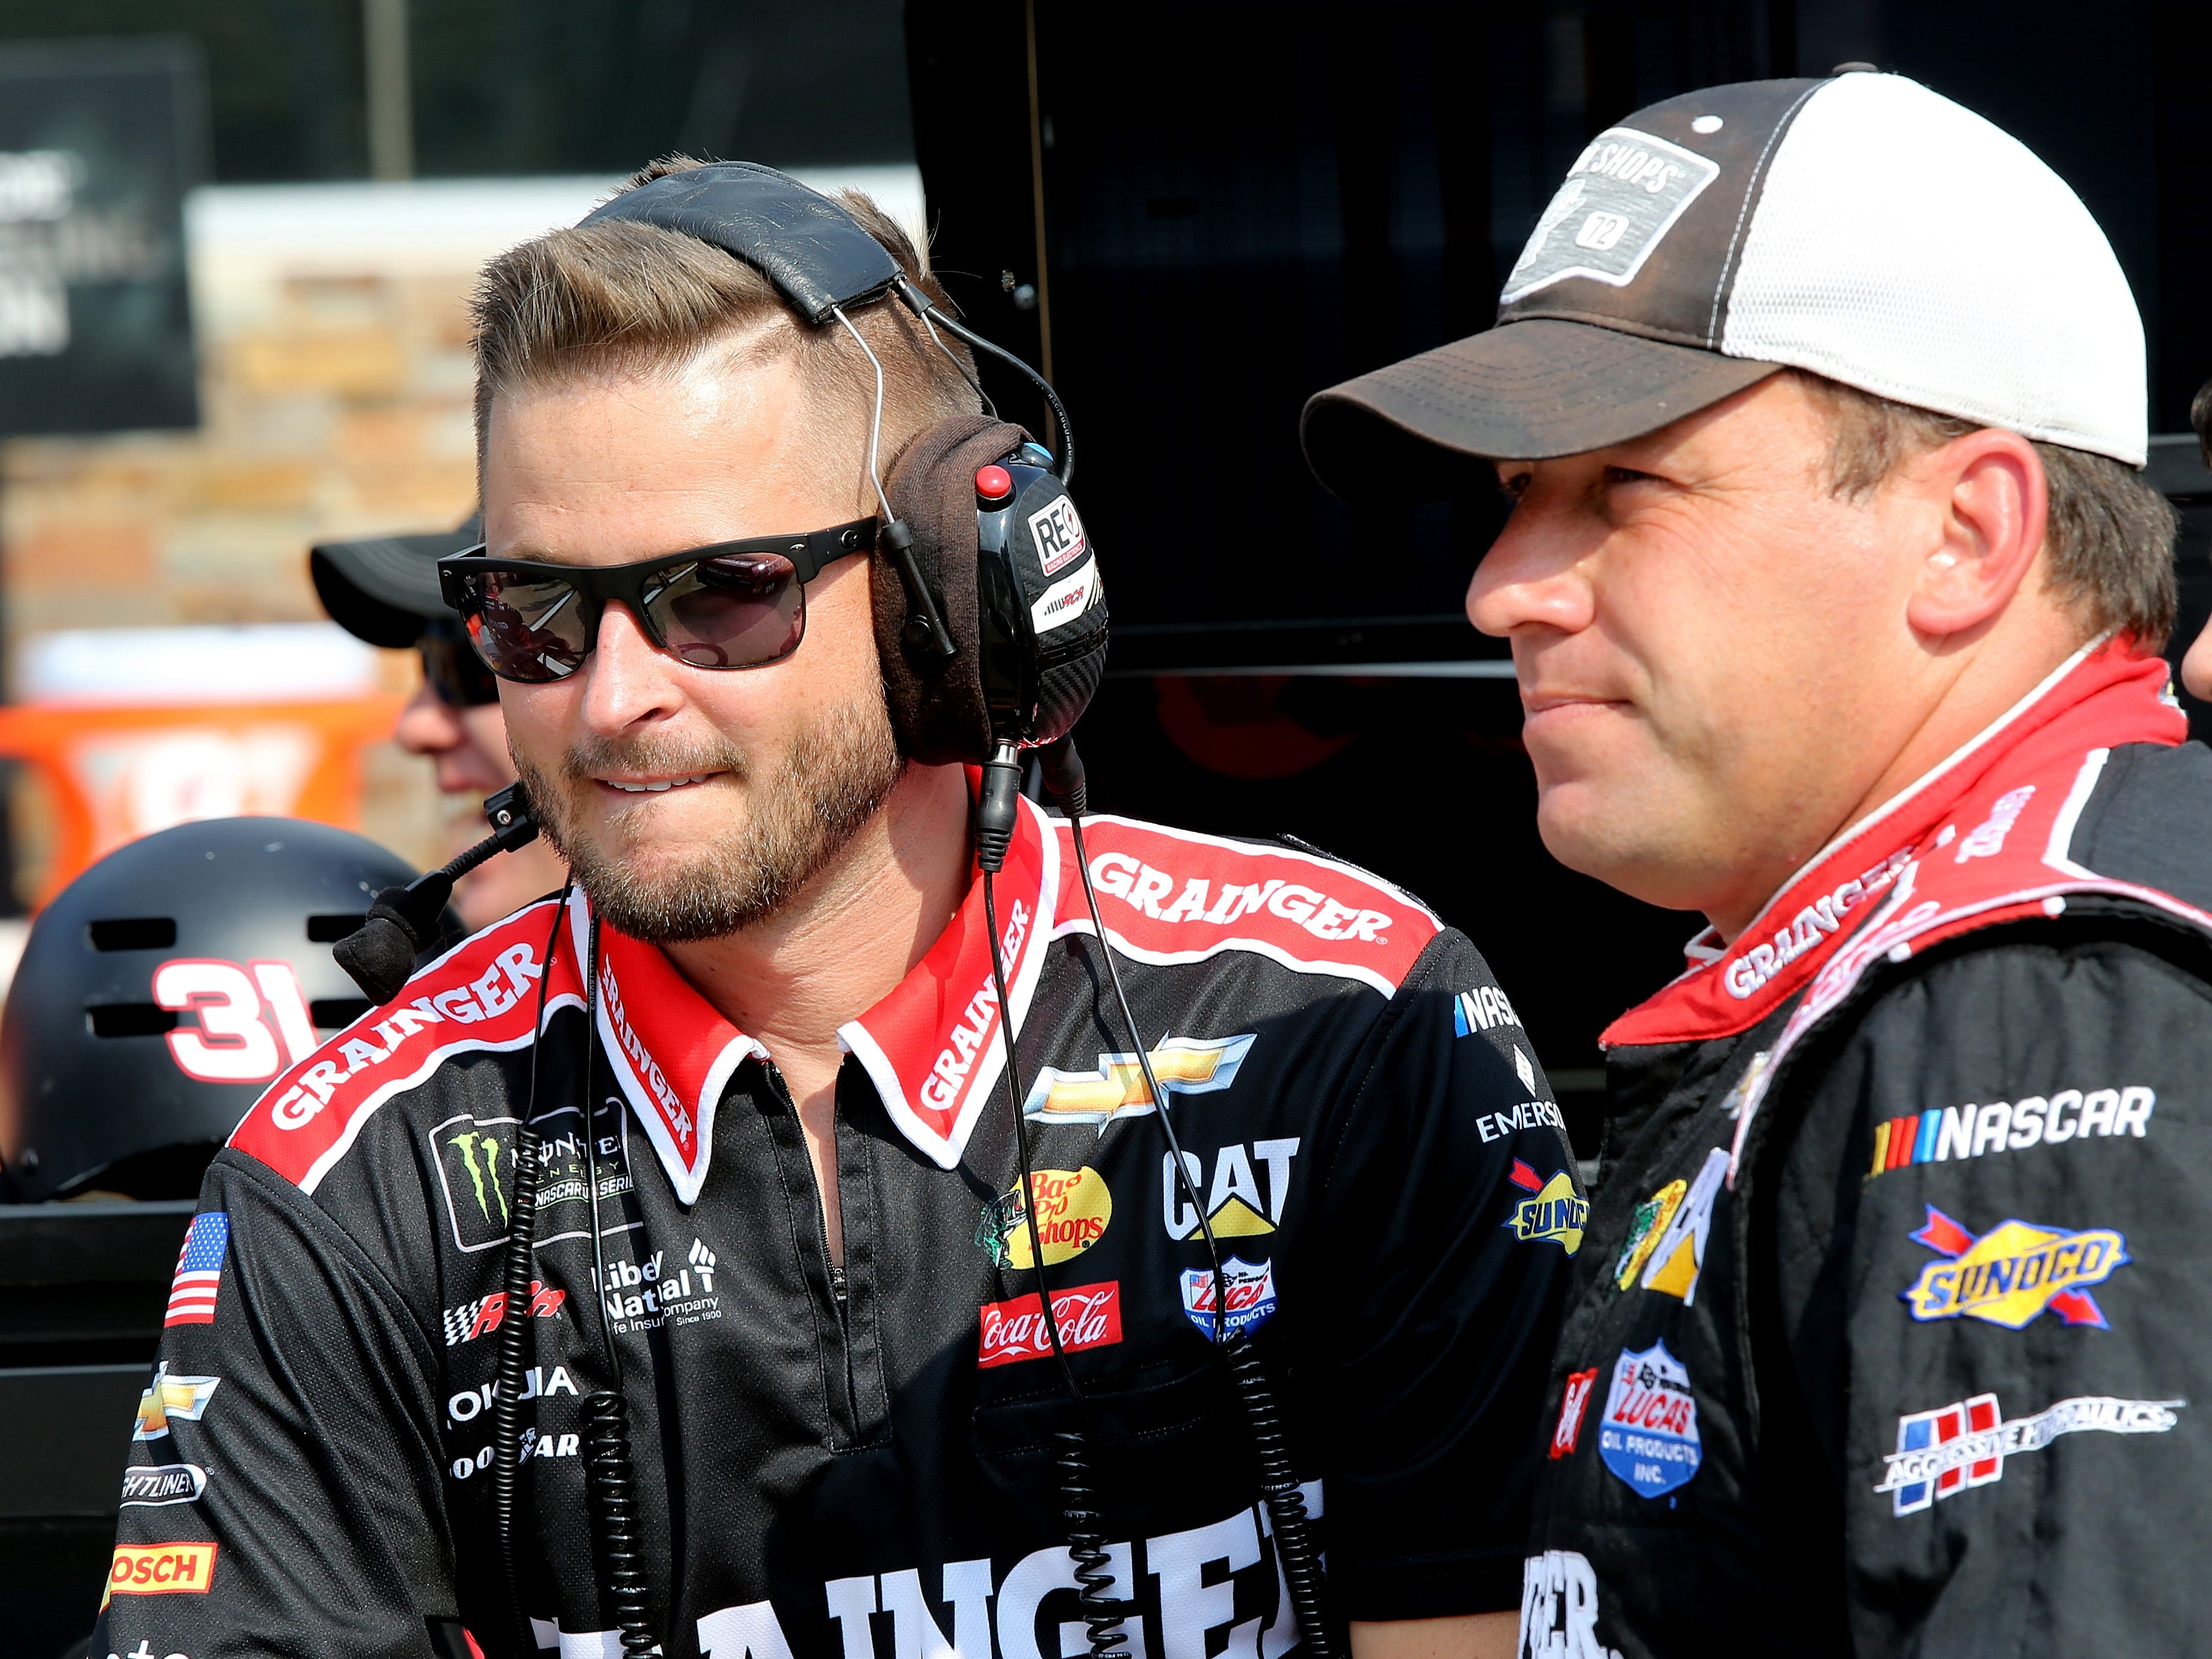 Ryan Newman, driver of the #31 Grainger Chevrolet, talks with a crew member during qualifying for the Monster Energy NASCAR Cup Series Consmers Energy 400 at Michigan International Speedway on August 10, 2018 in Brooklyn, Michigan.